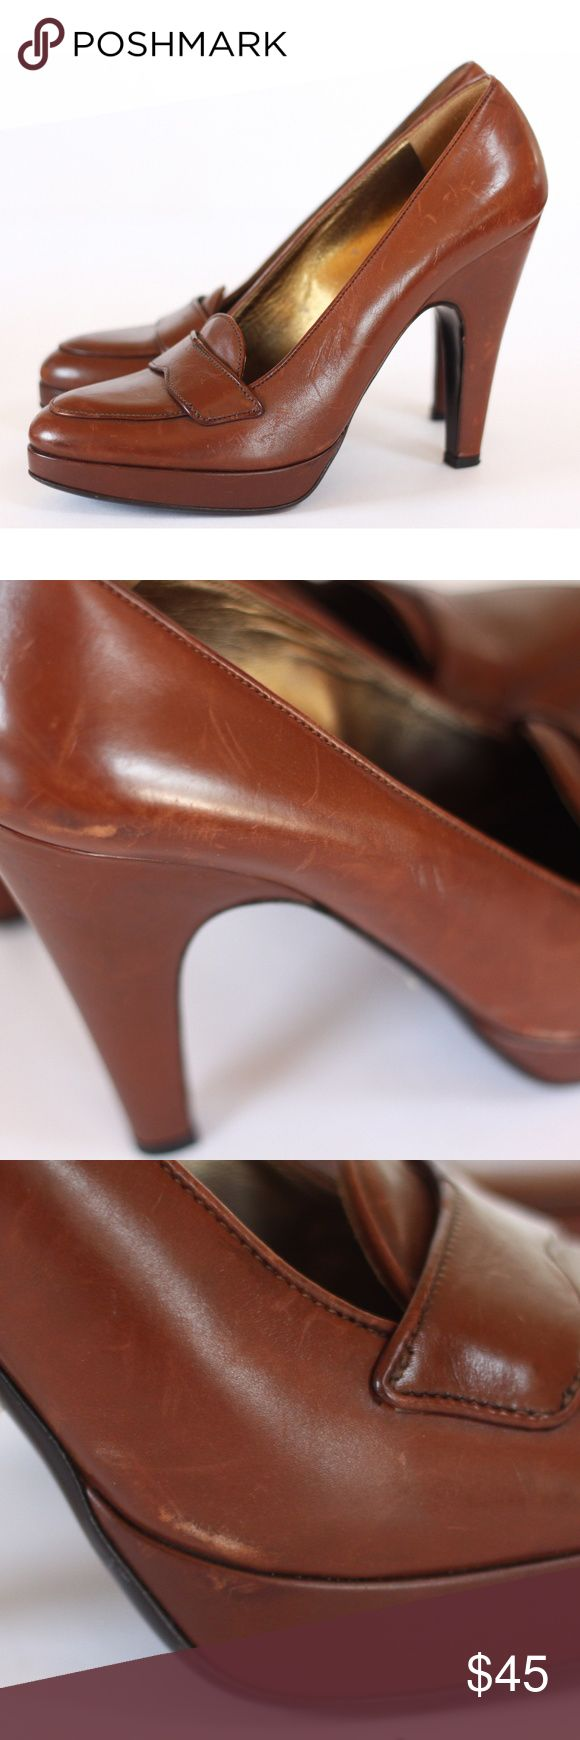 Prada Brown Leather High Heeled Loafters Pair of high heel loafers from pradawith  brown leather with an almond toe. They are structurally in good condition HOWEVER the leather does have scratches and scuffs. There are products that can repair this or it can be taken to a cobbler. Please note the pictures. We can send additional pictures and measurements upon request. The shoes are a size european 39. IMO they RUN SMALL. I wear a 9 and these are more of an 8. They are also on the narrower…